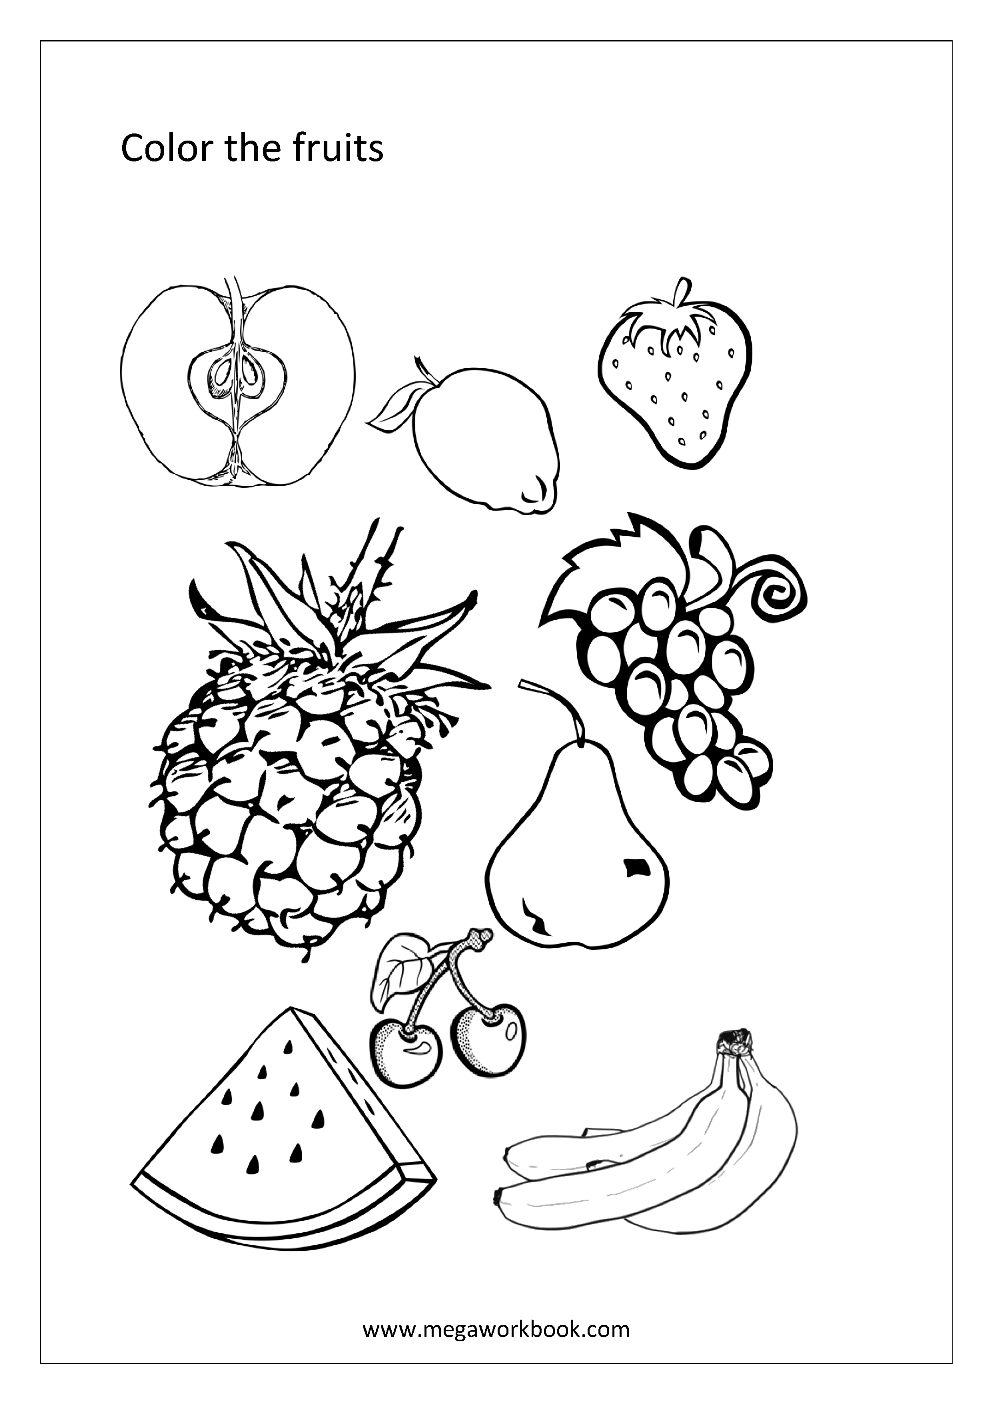 coloring fruits for nutrition month kids yoga lesson plans omazing kids kids nutrition food nutrition coloring fruits for month